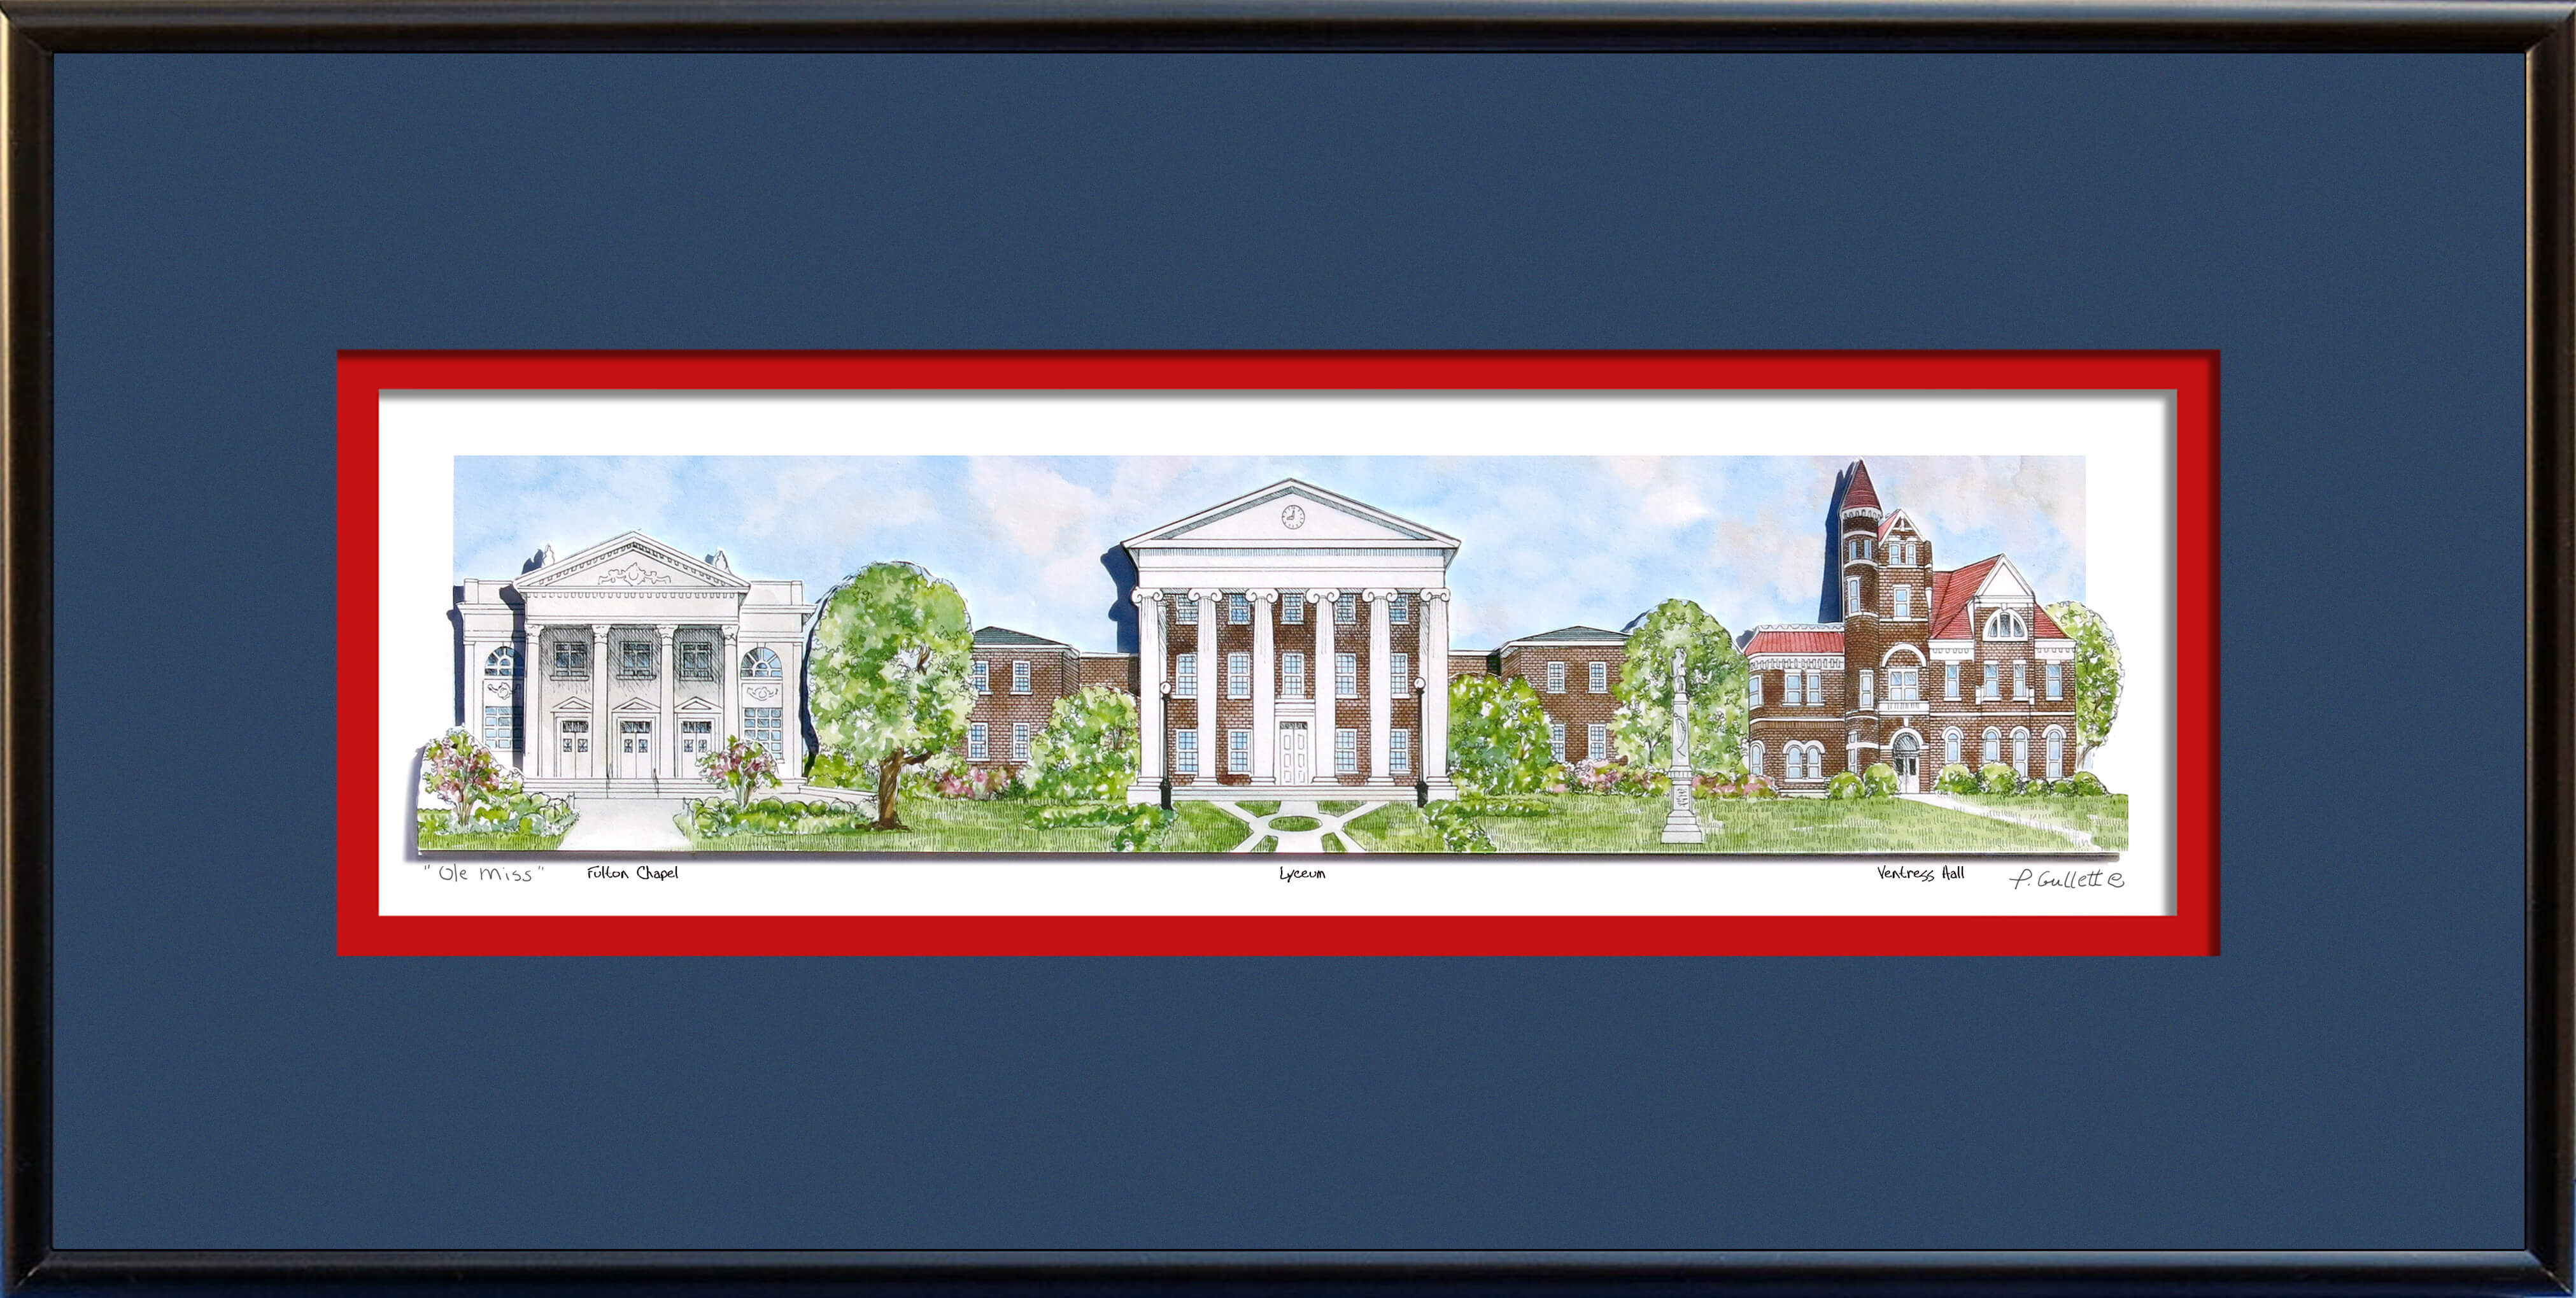 U of MS FRAME